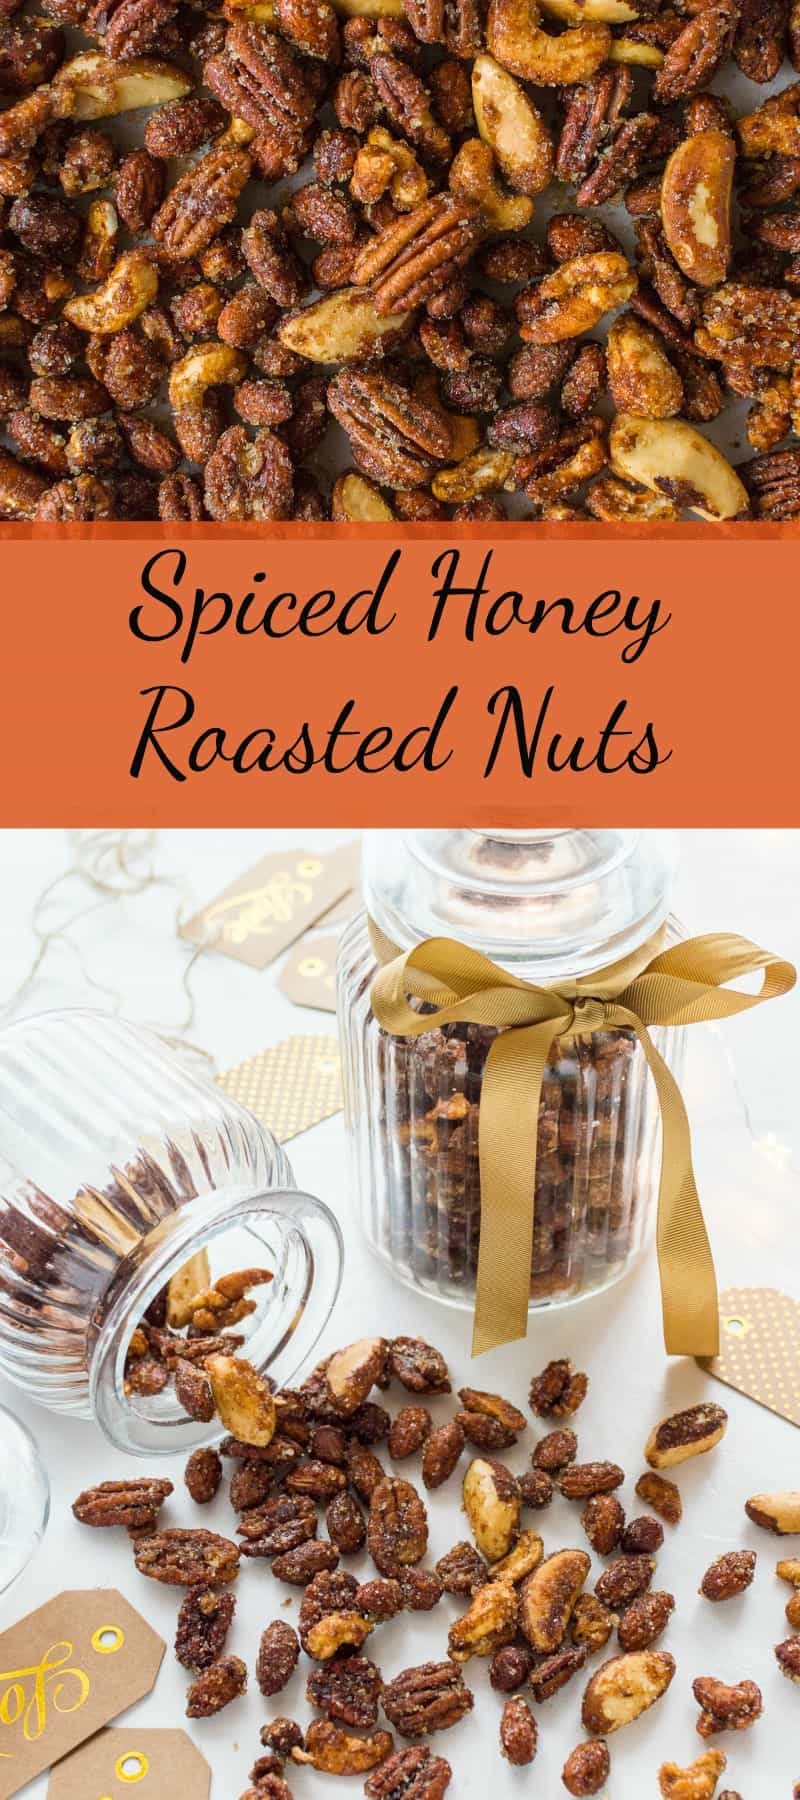 Spiced honey roasted nuts pinterest